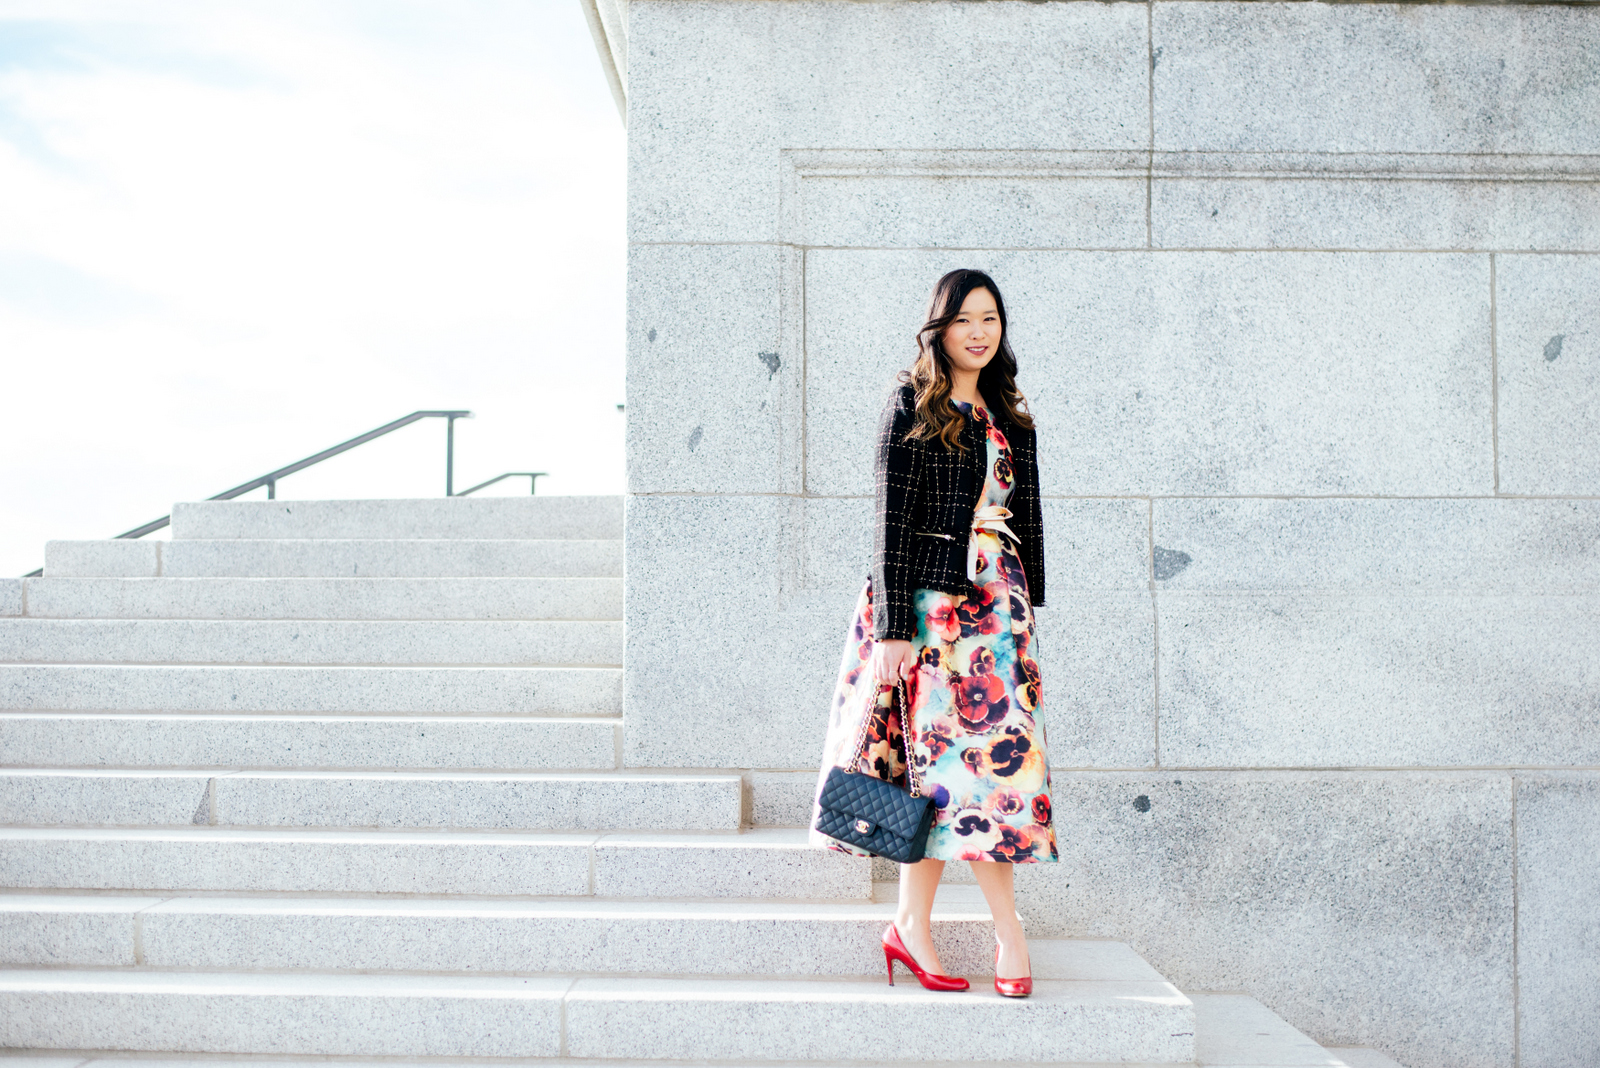 Floral dress and Chanel inspired jacket